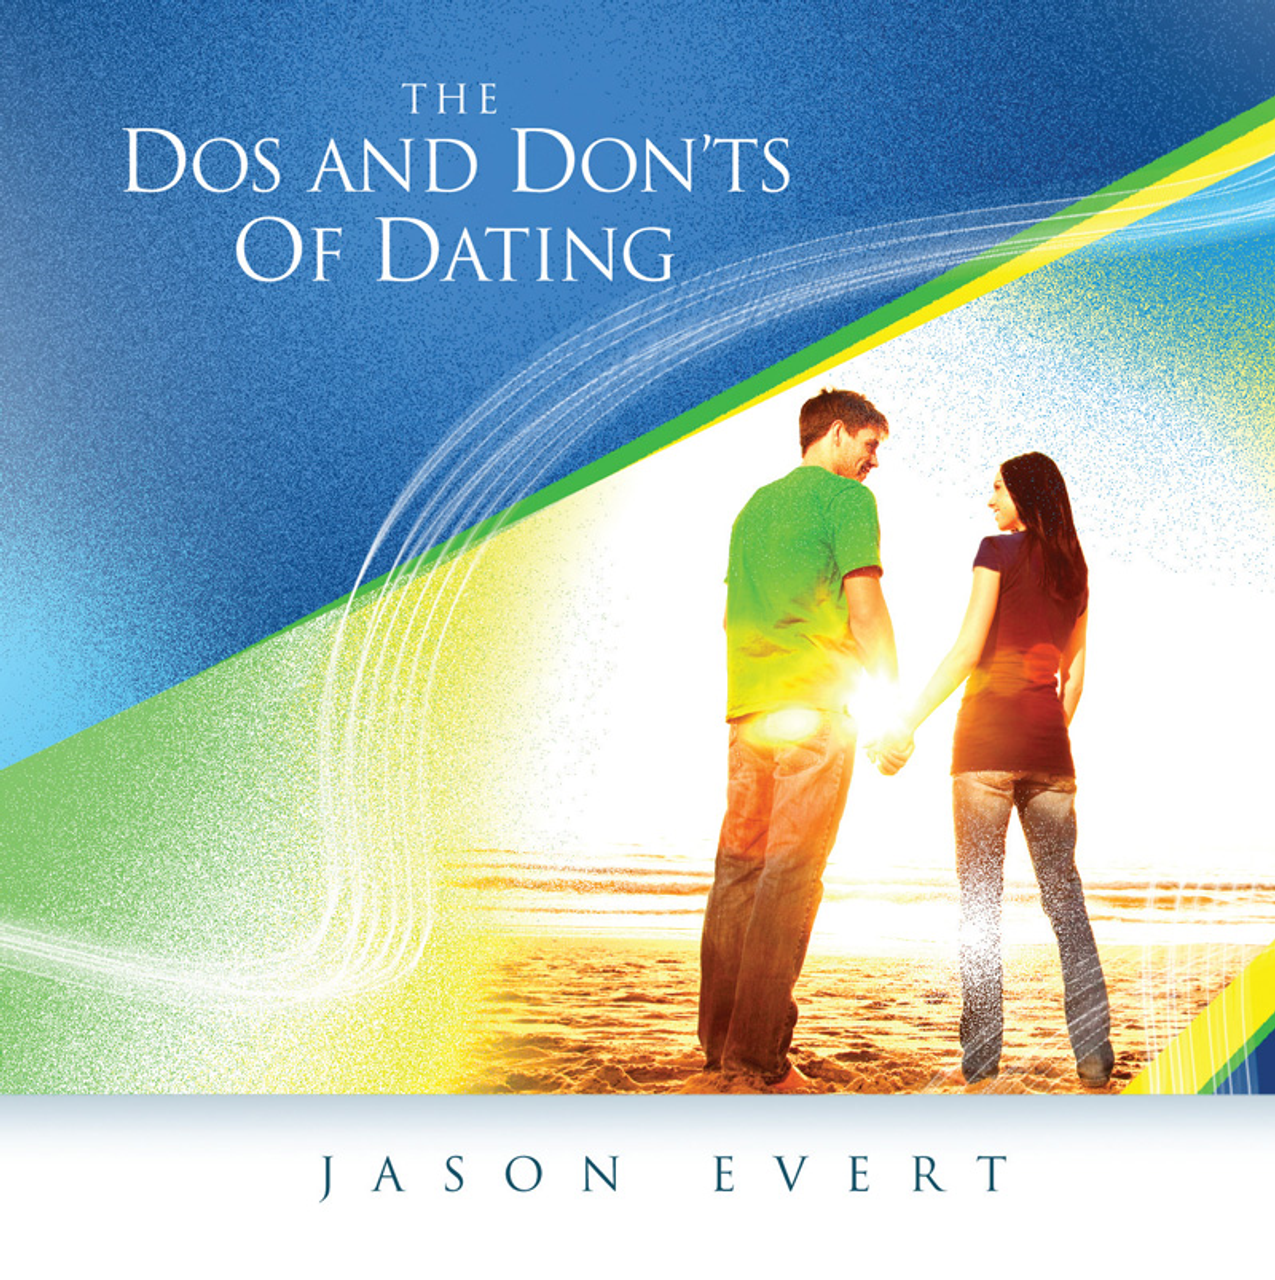 The dos and donts of dating